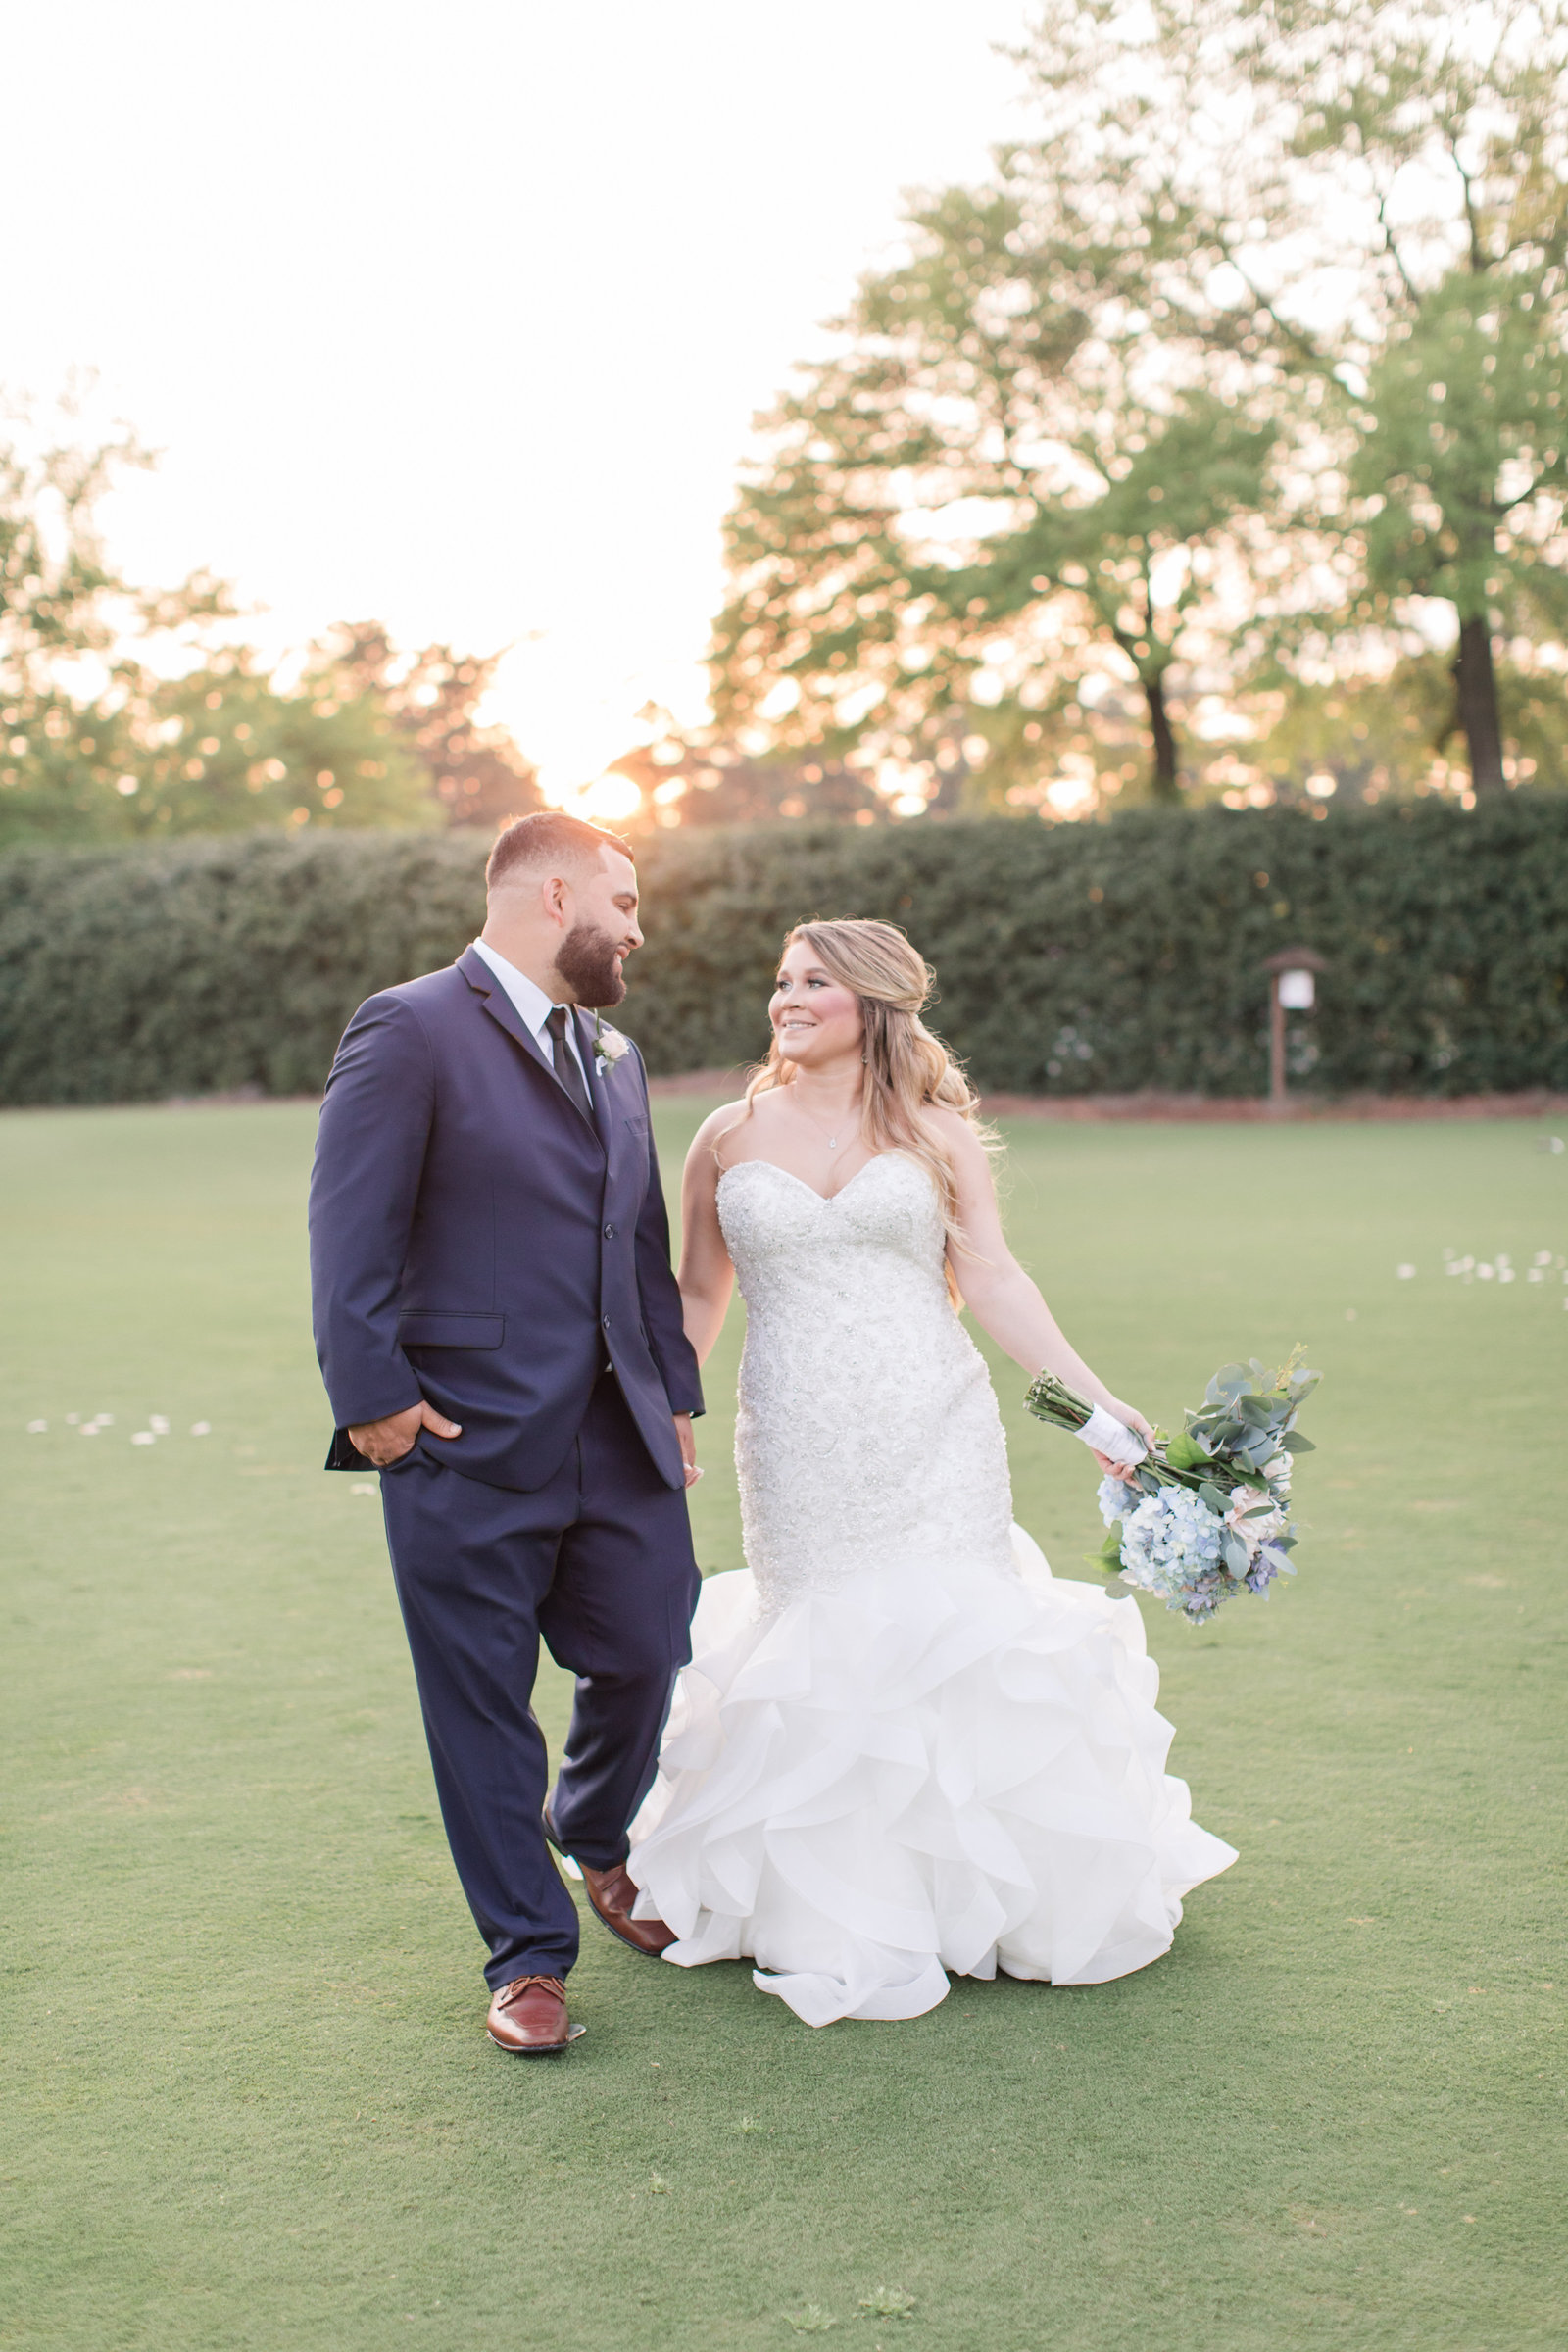 Jennifer_B_Photography-Pinehurst_Club-Pinehurst_NC-Wedding_Day-Caleb___Miranda-JB_Favs-2019-0229